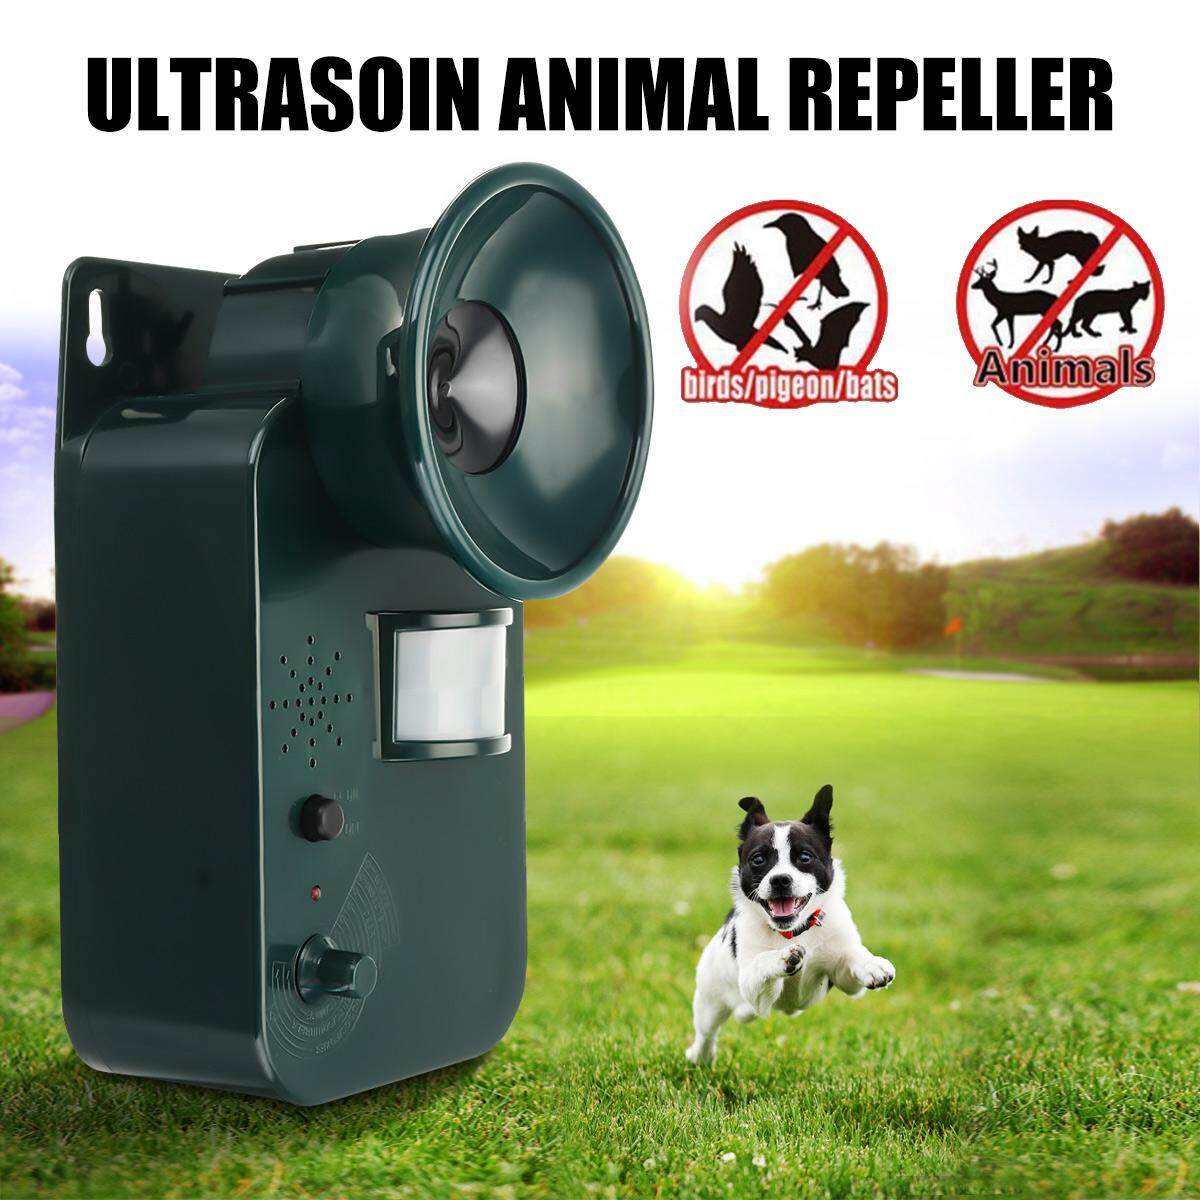 5000ft Ultrasonic Pest Repellers Outdoors Garden Mouse Bird Cat Animal Attacker - intl